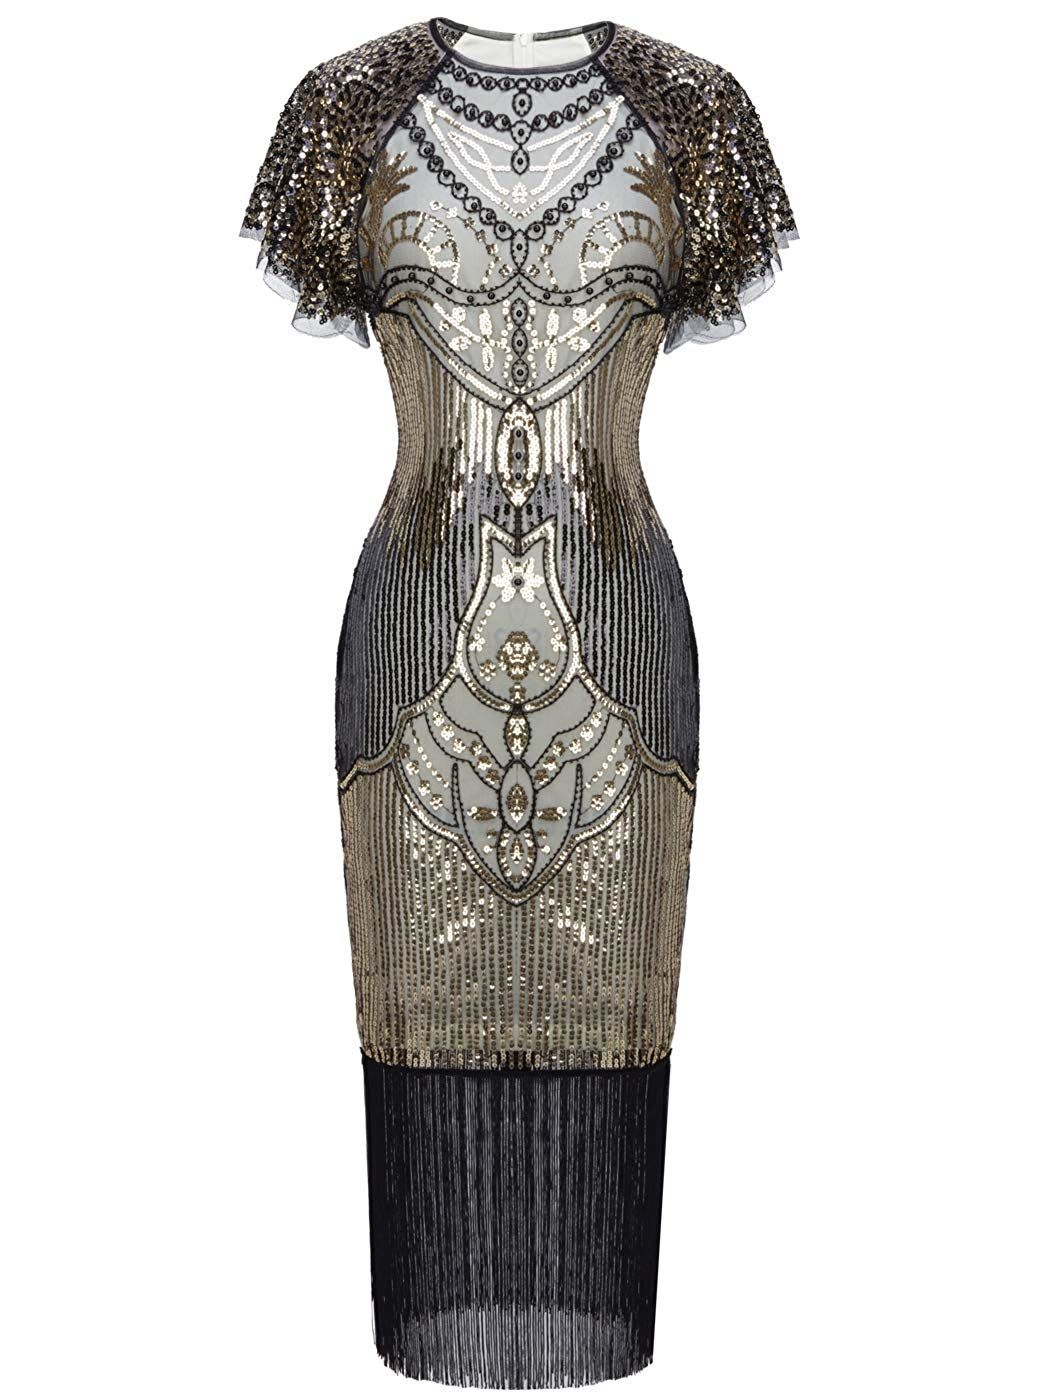 94652a45 FAIRY COUPLE 1920s Knee Length Flapper Party Cocktail Dress with Sequined  Cap Sleeve Layer Tassels Hem at Amazon Women's Clothing store: